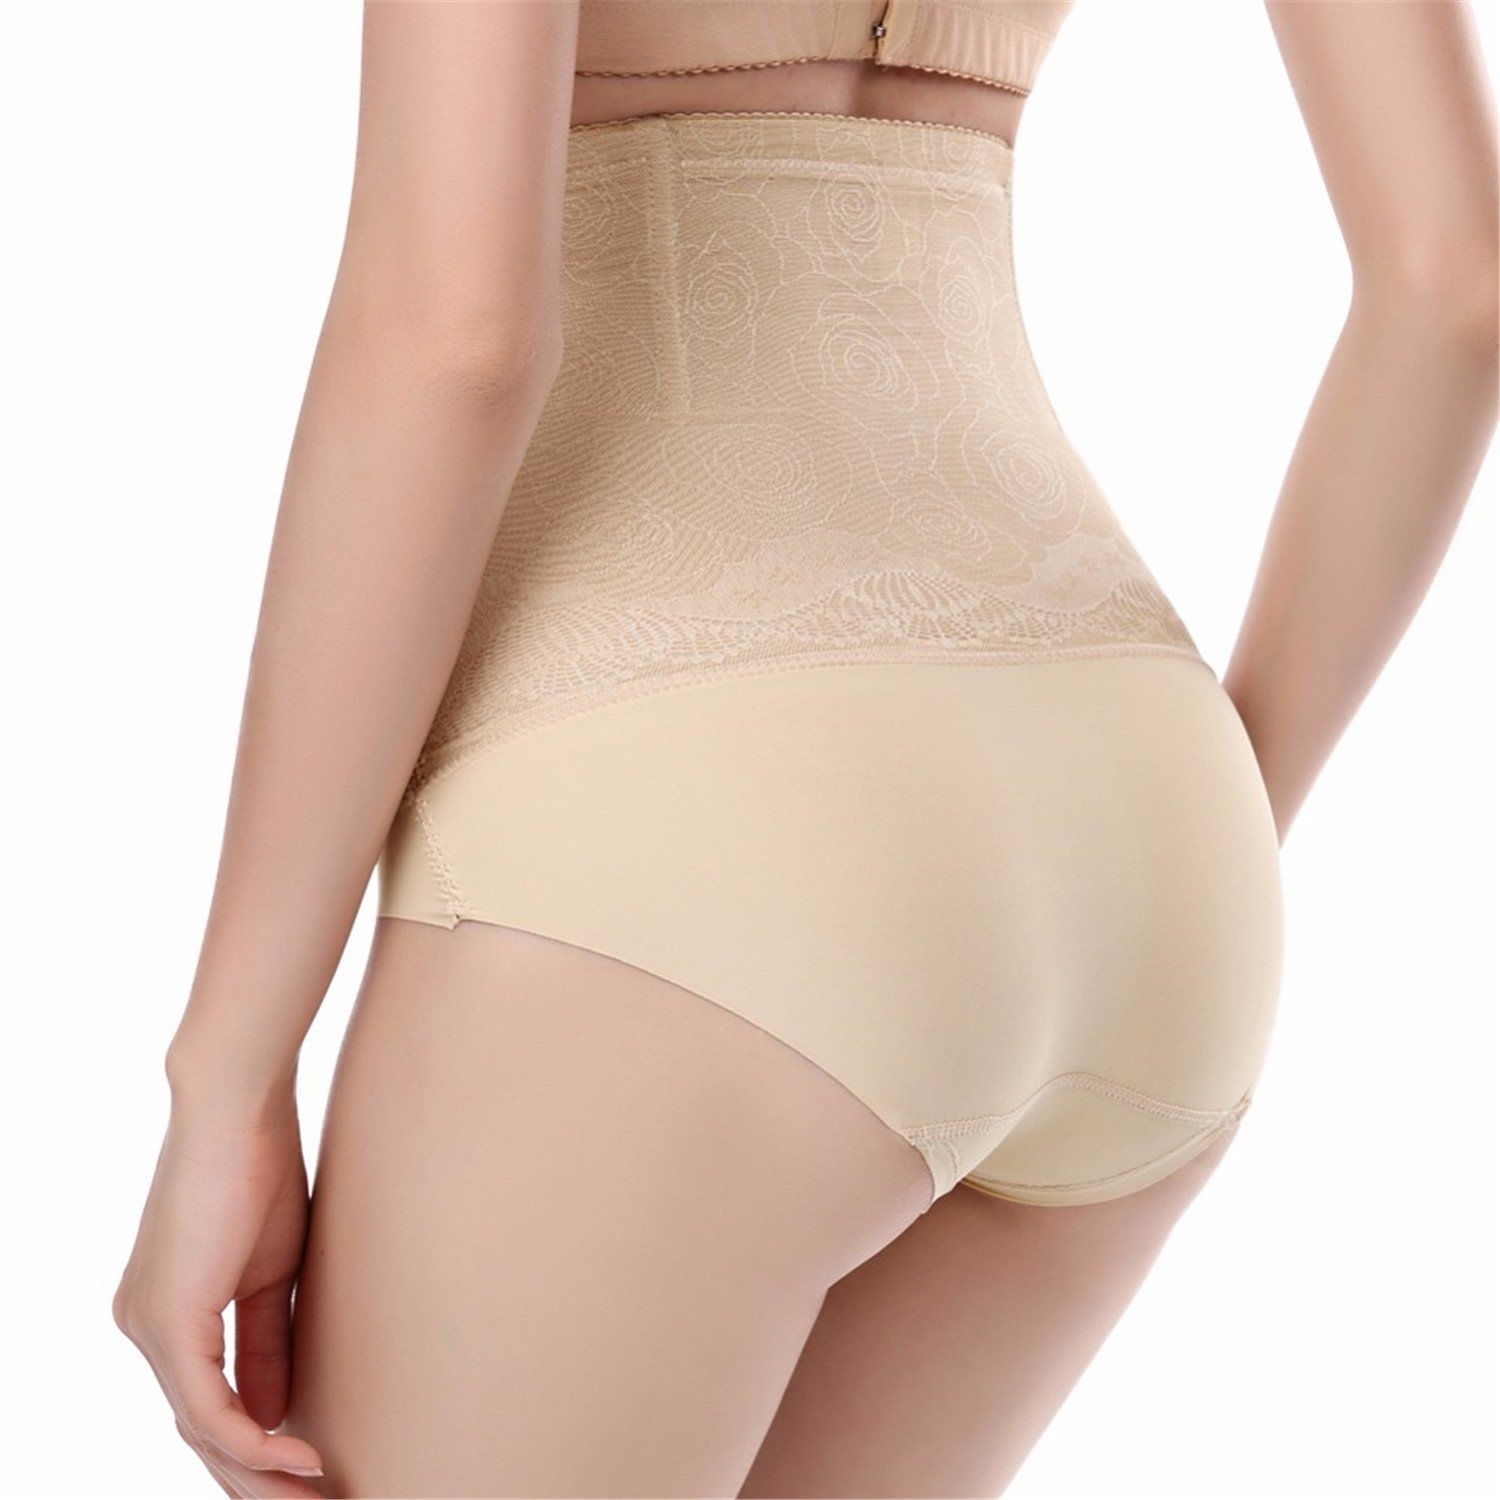 fb5f328de6e Doris Batchelor Fashion Waist Trainer Women Panties Body Shaper Lose Weight  Butt Lifter Slimming Belt xingse